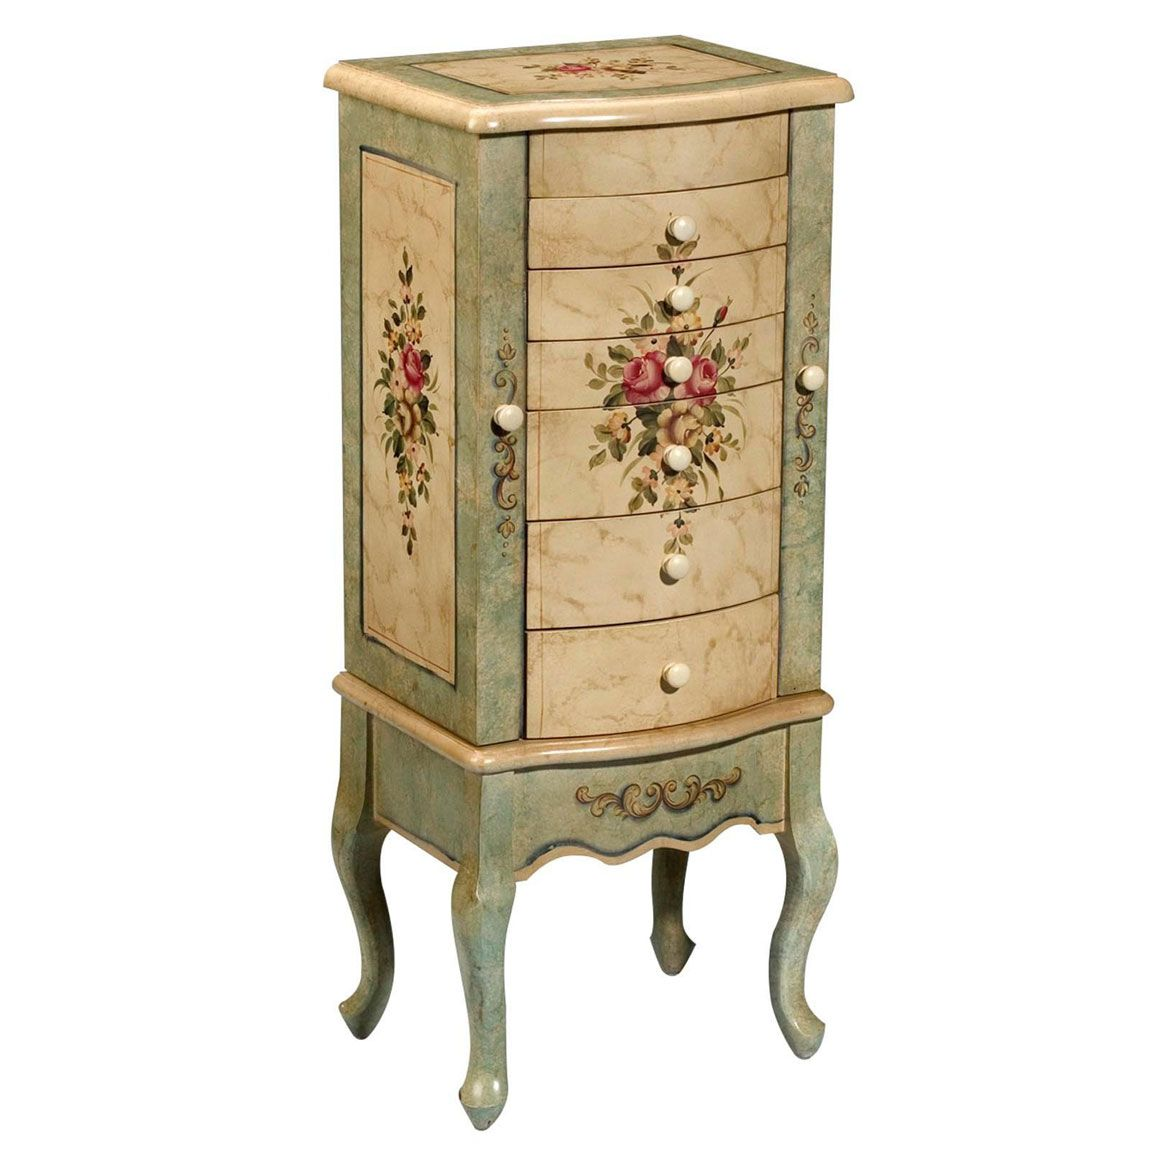 floral painted jewelry armoire design | Jewelry Armoires | Pinterest ...